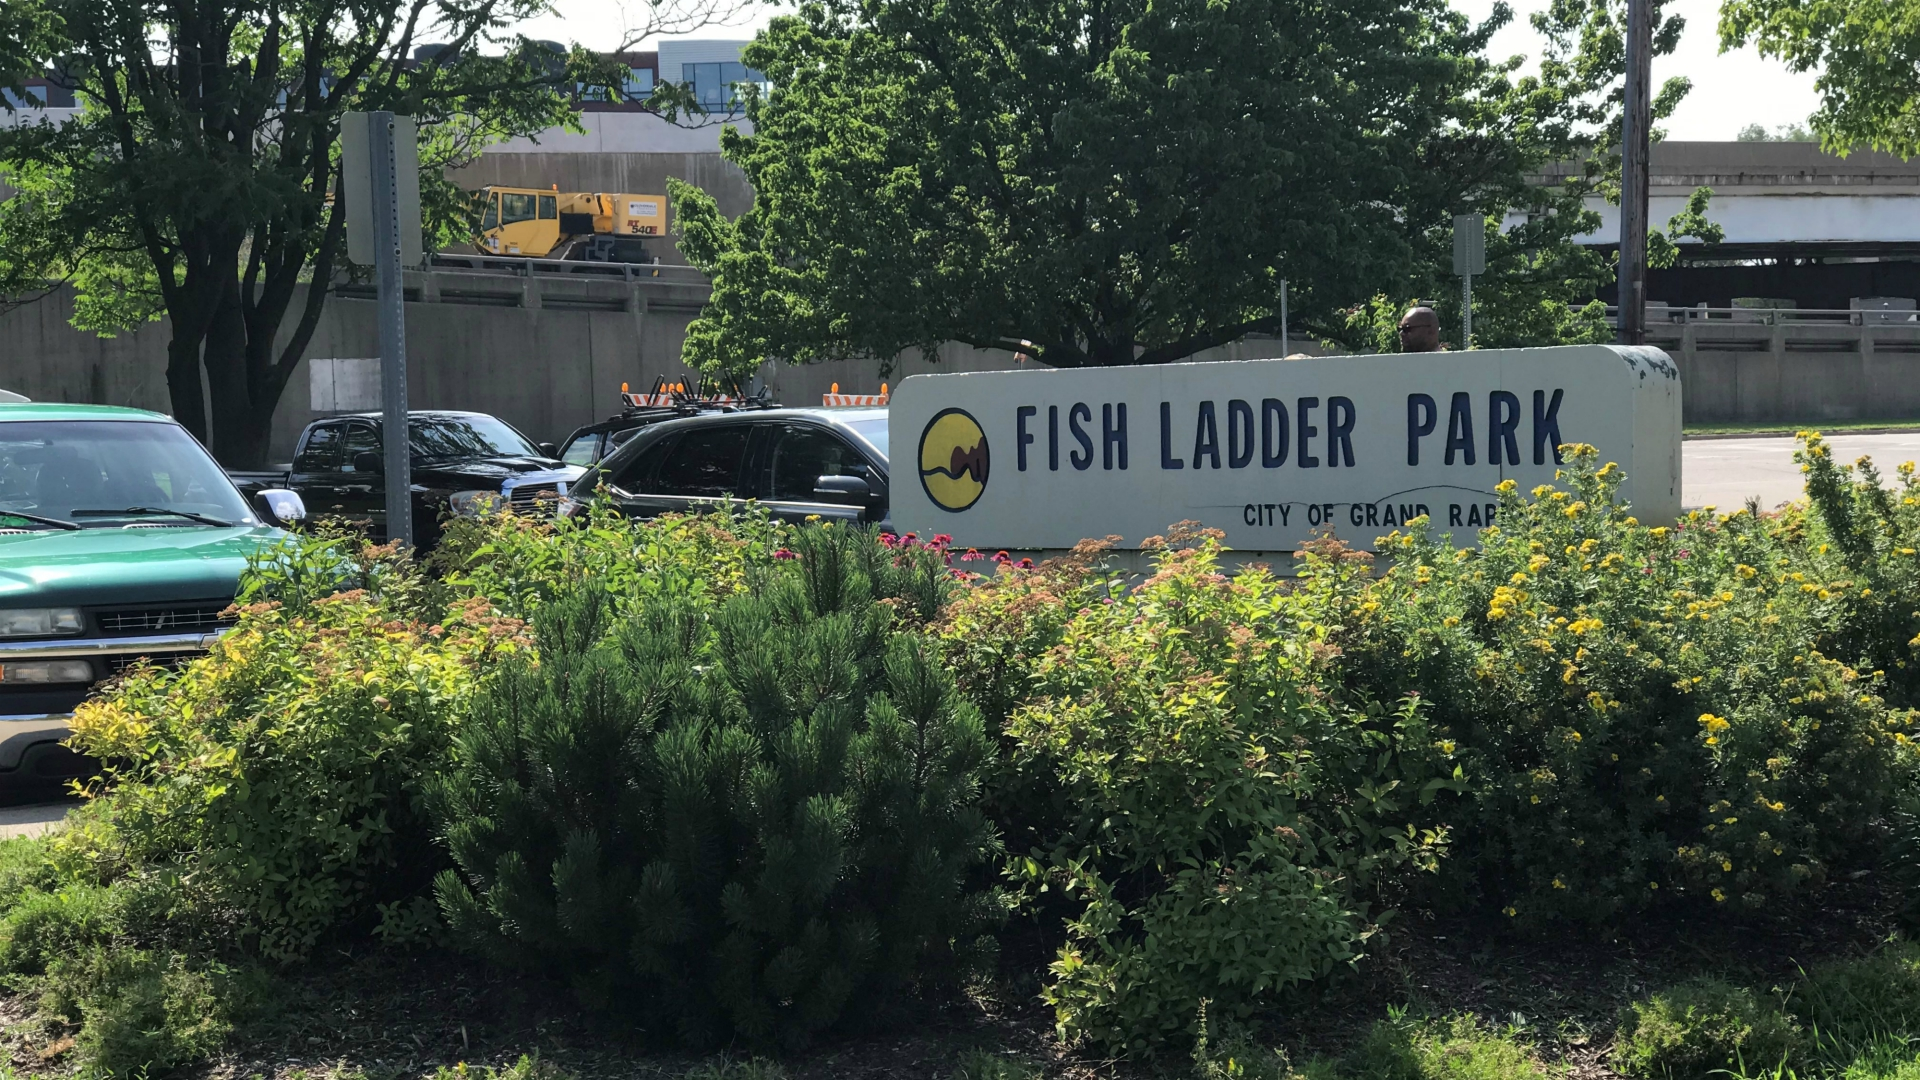 Fish Ladder Park